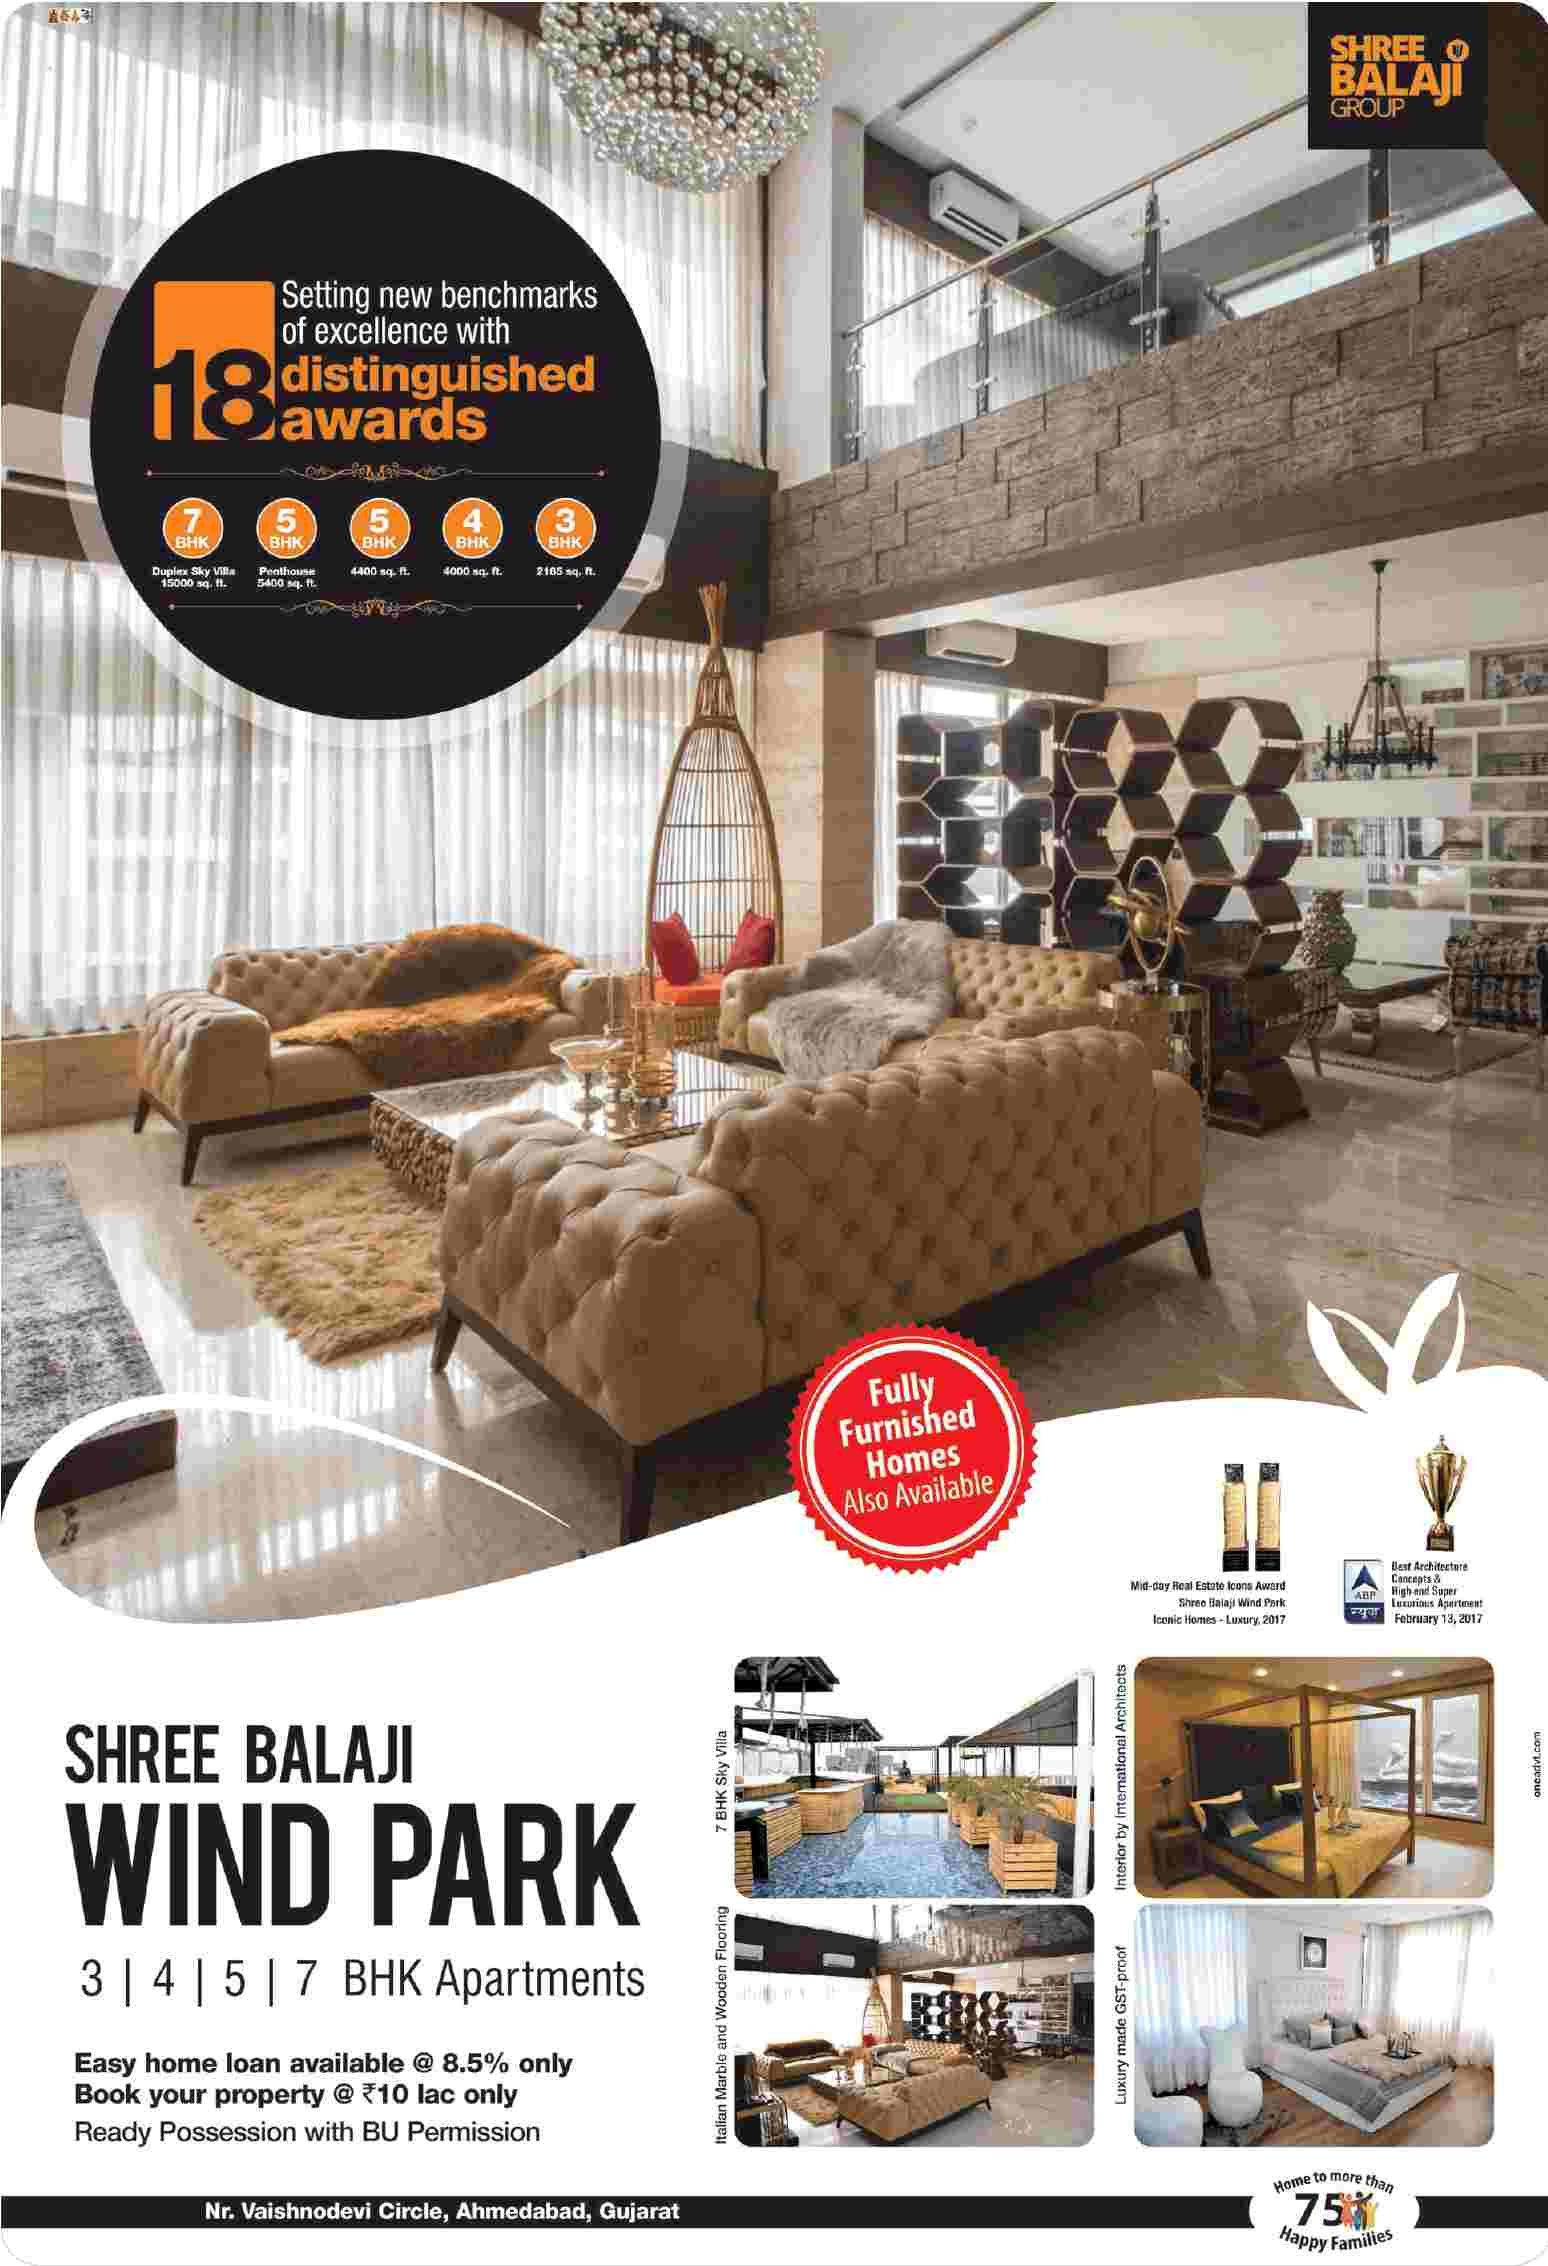 Book your home at Rs 10 Lac only at Shree Balaji Wind Park in Ahmedabad